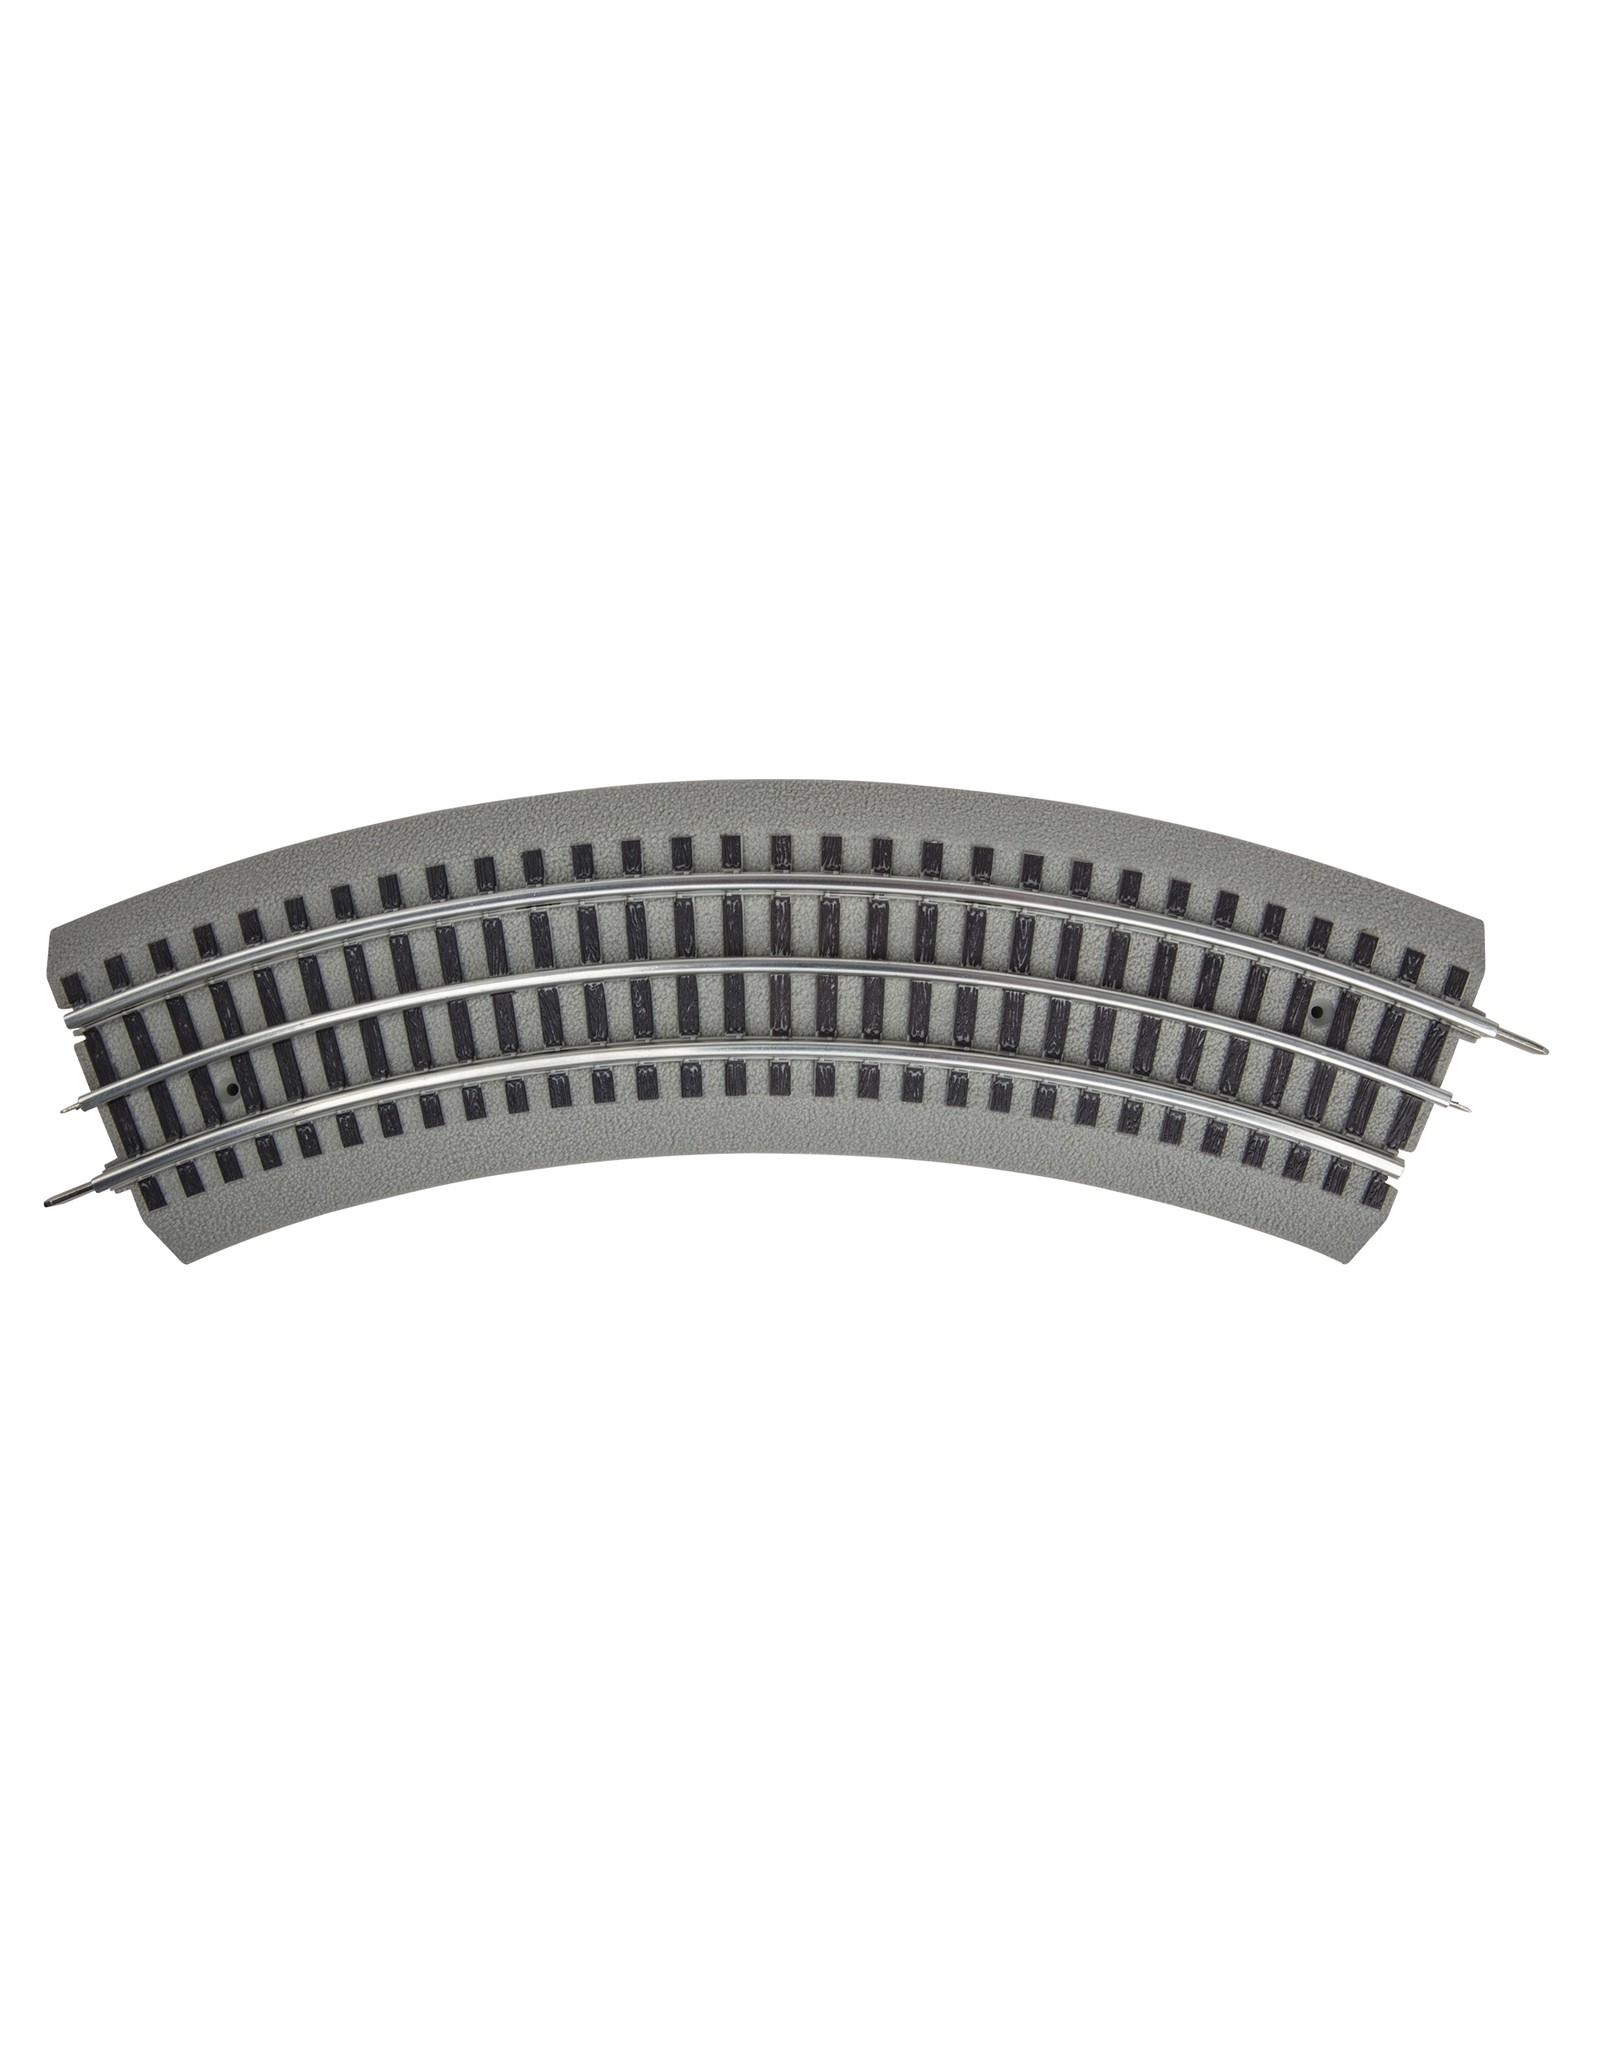 Lionel FasTrack O31 Curved Track